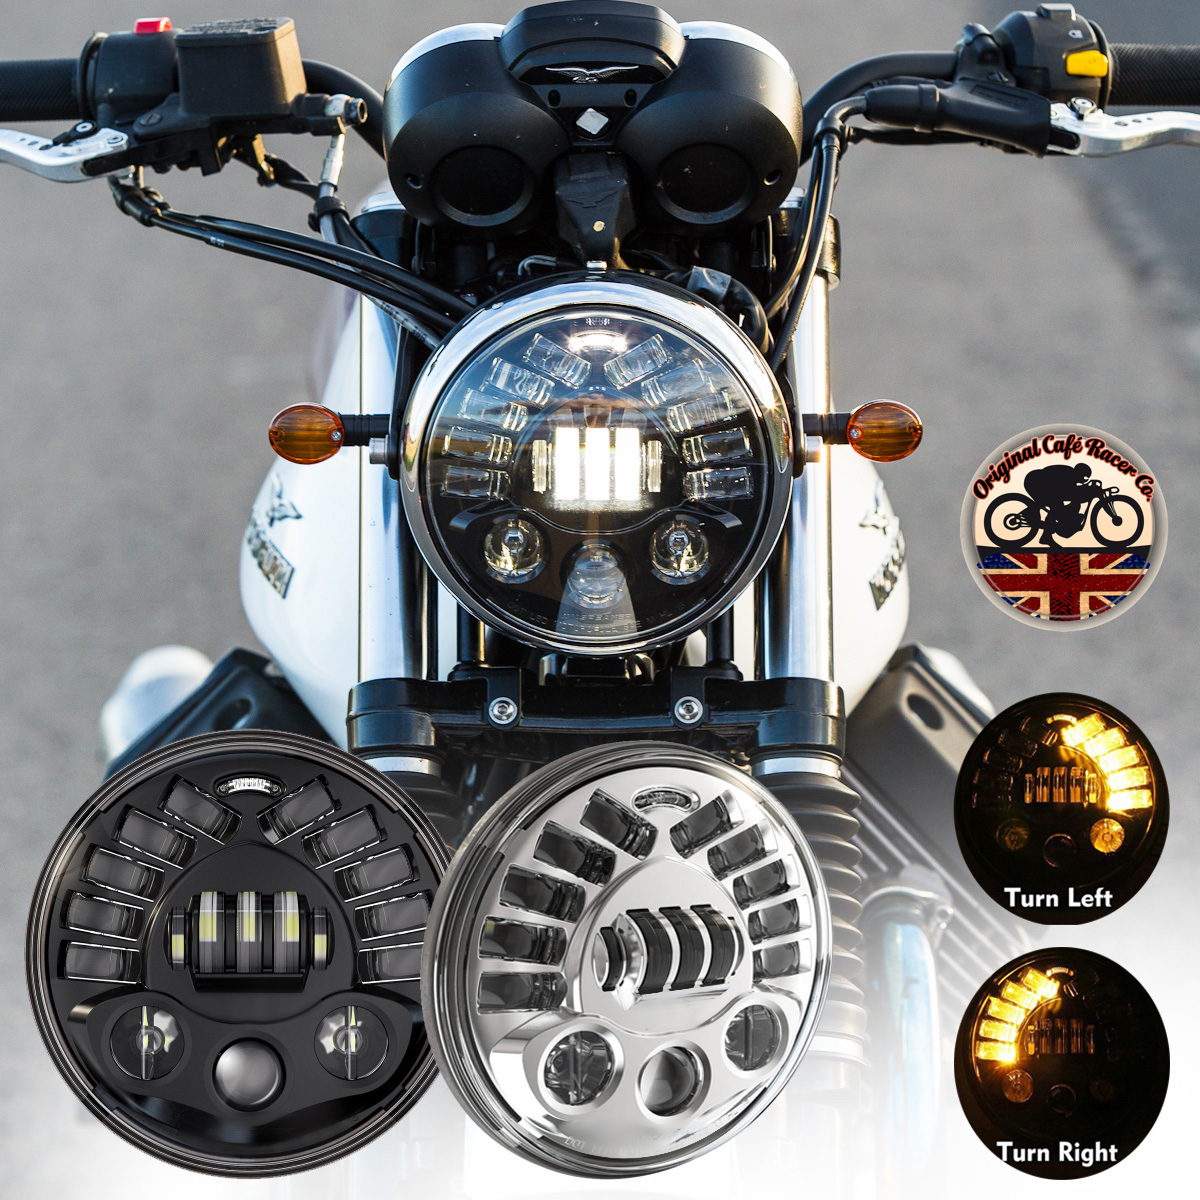 Headlight Headlamp Led Cree X 1 Light 7 Cafe Racer Motorbike Bike E